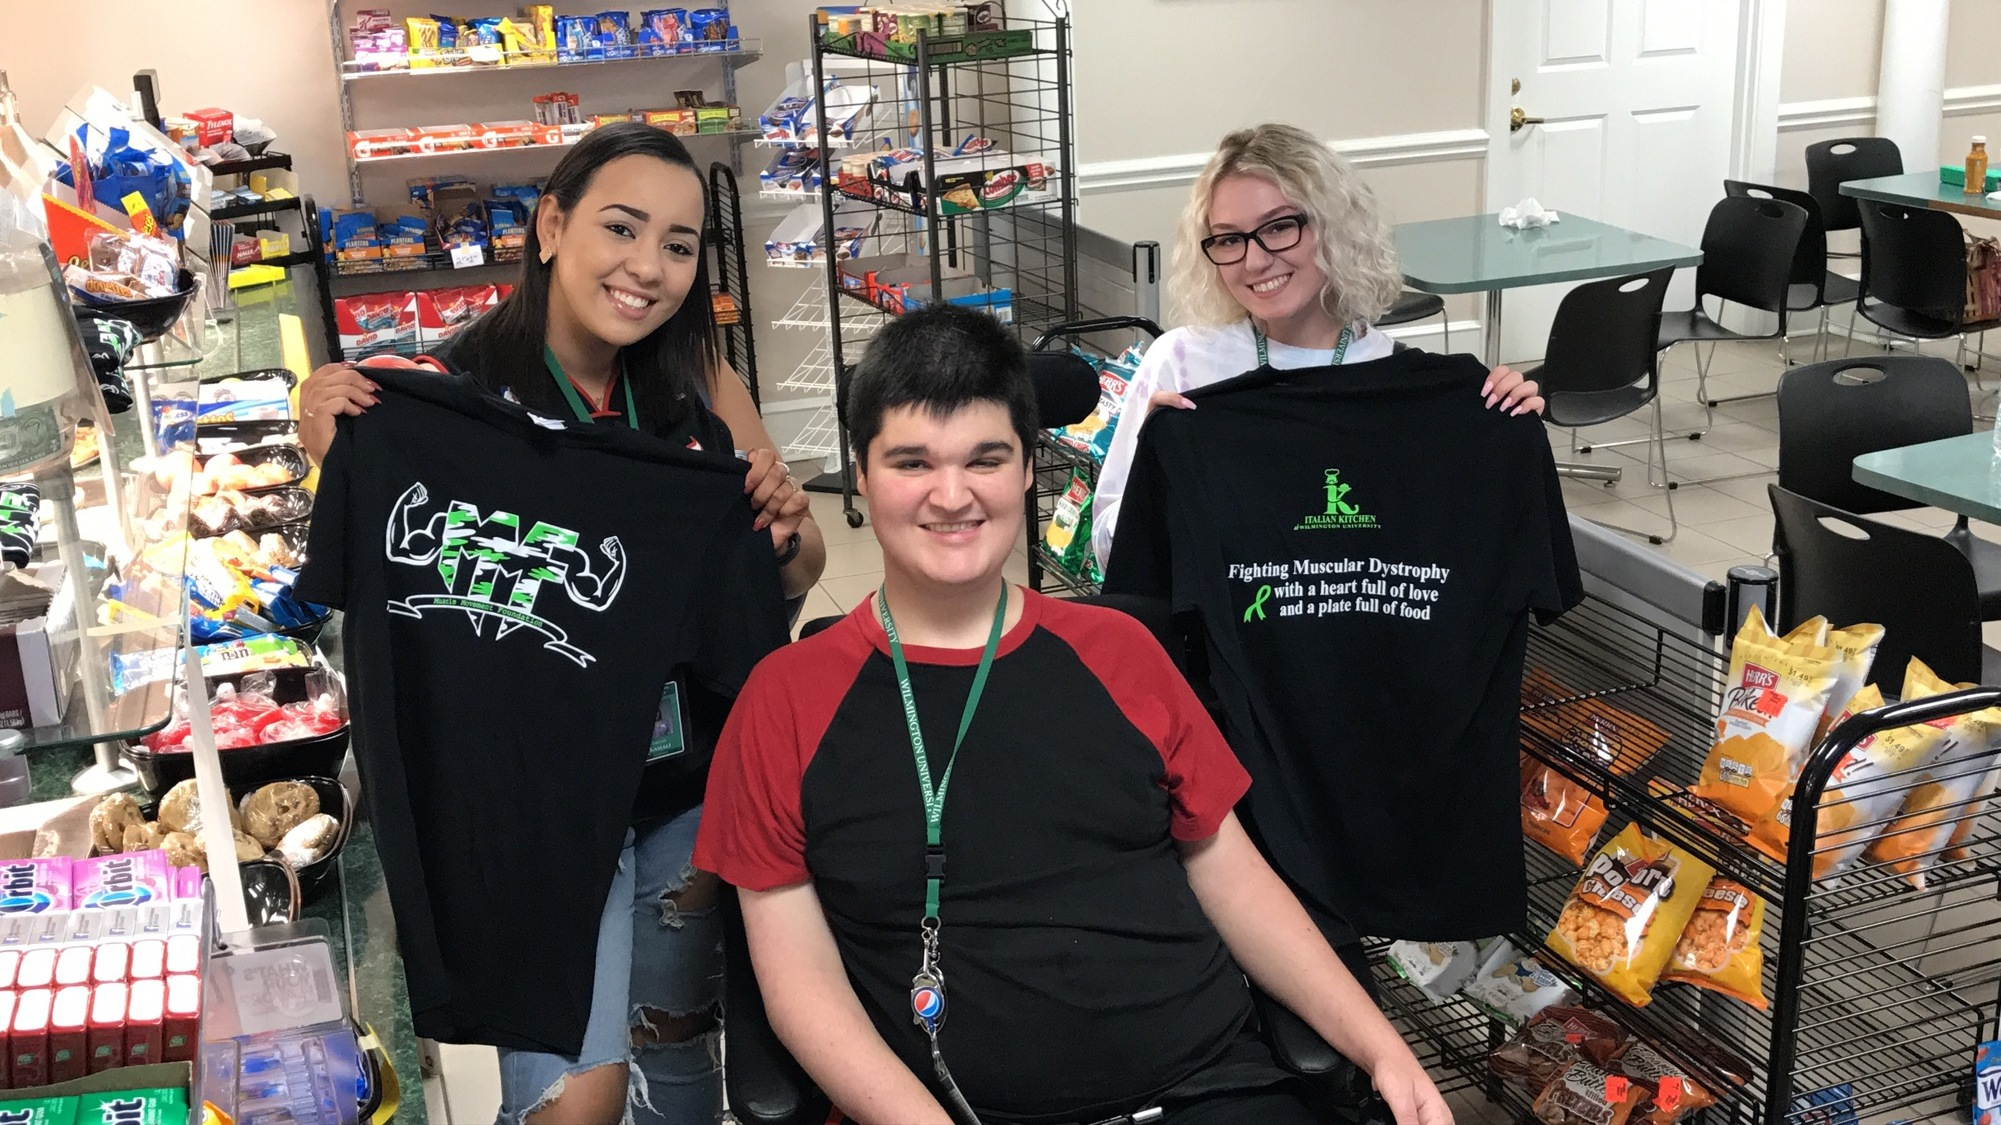 Students at Wilmington University (DE) enjoyed stopping by the Italian Kitchen at Wilmington University to purchase a MMF shirt and snacks to raise donations for MMF!